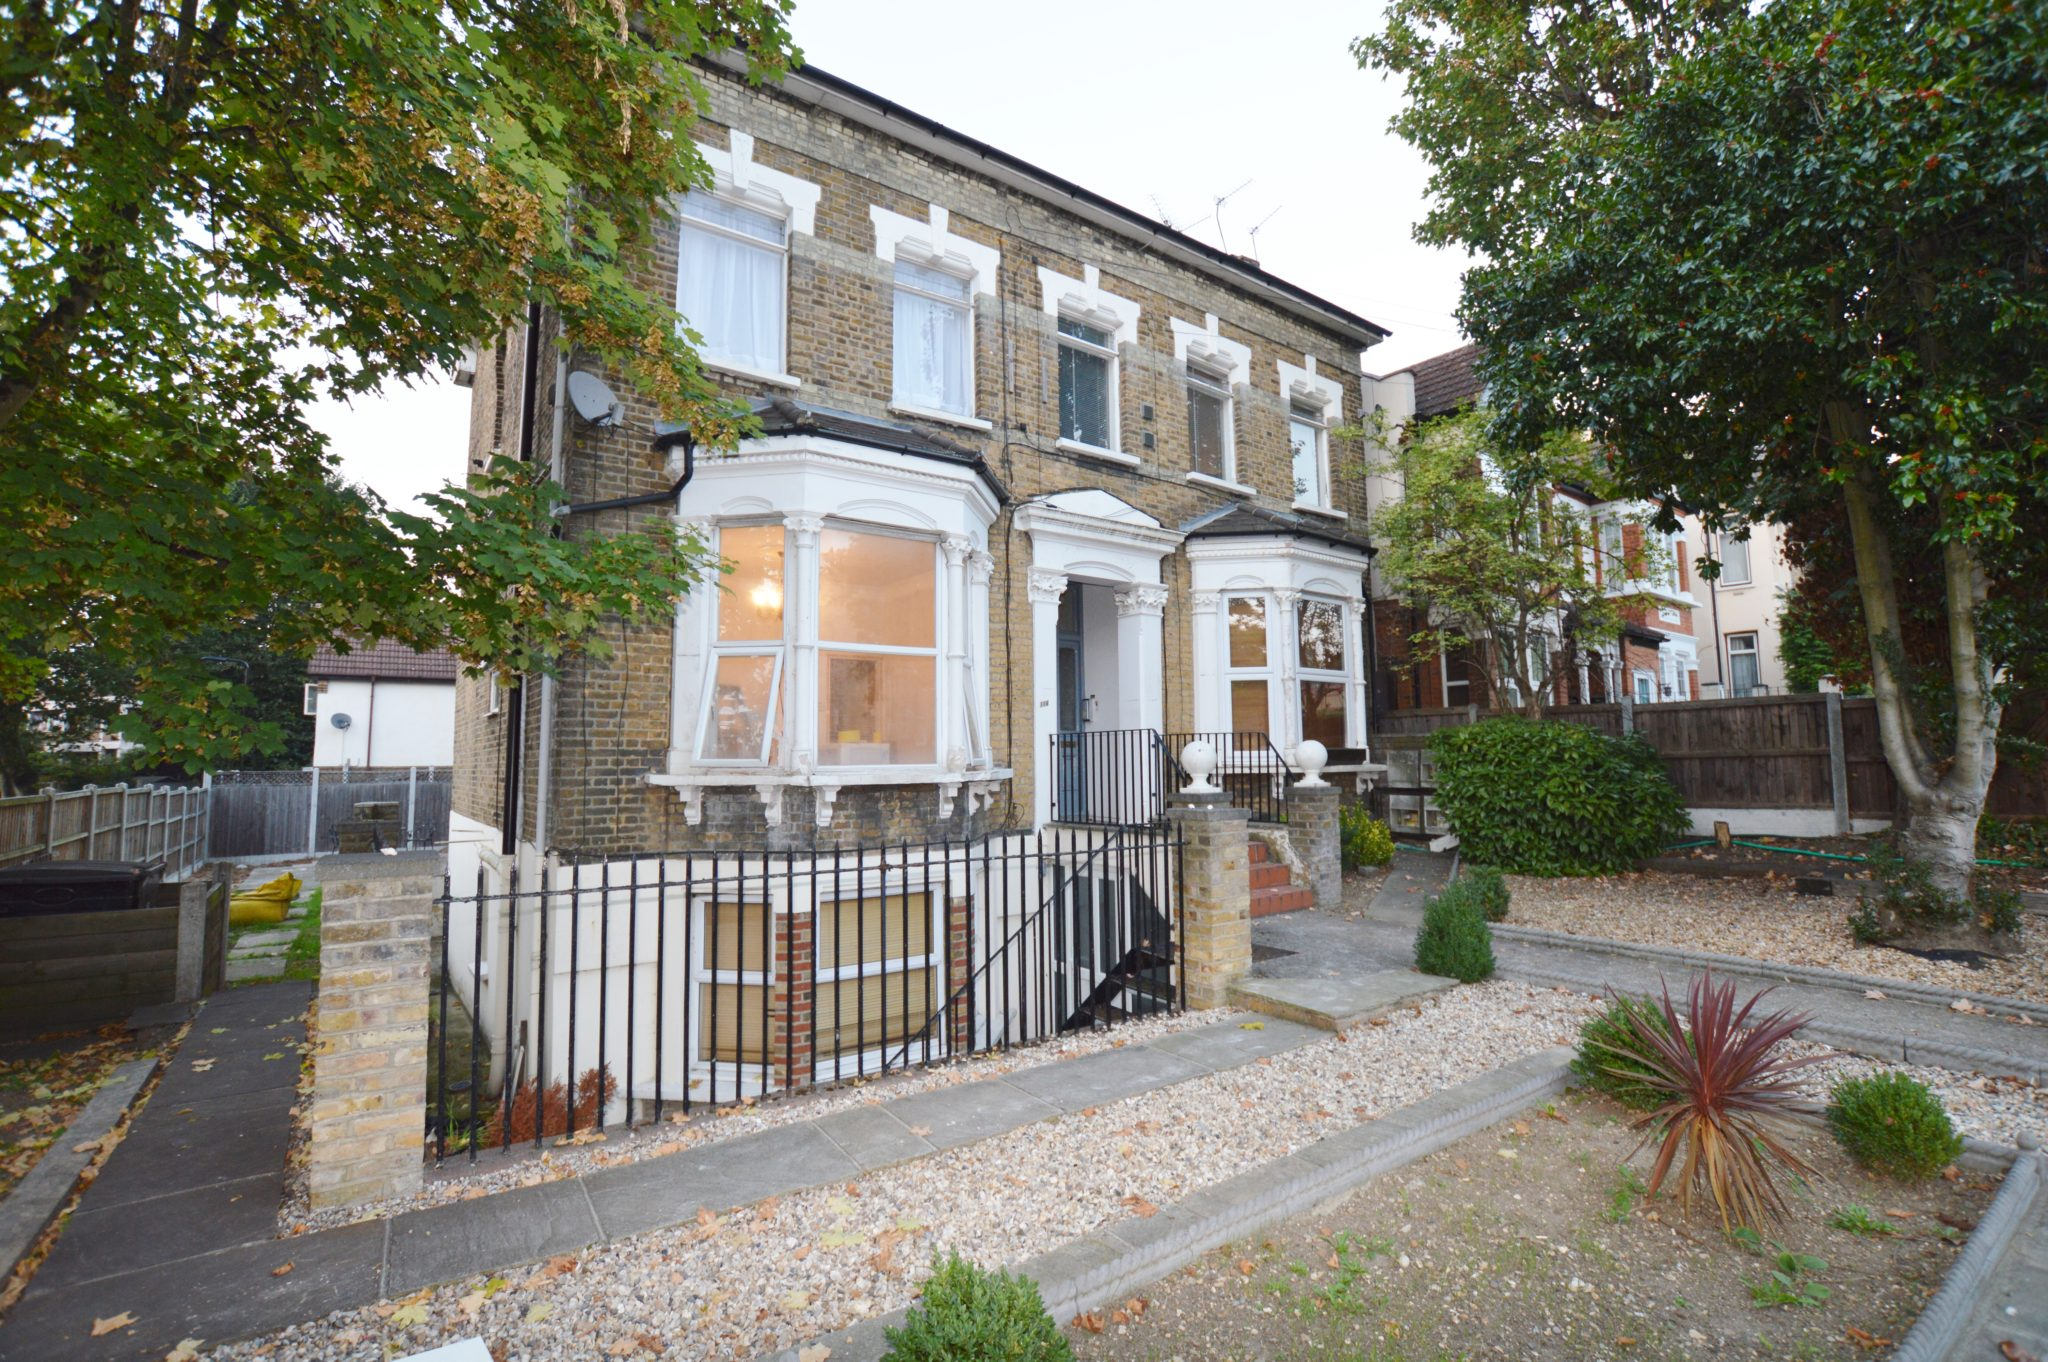 2 Bedroom Flat, Wallwood Road, Leytonstone, E11 1AN